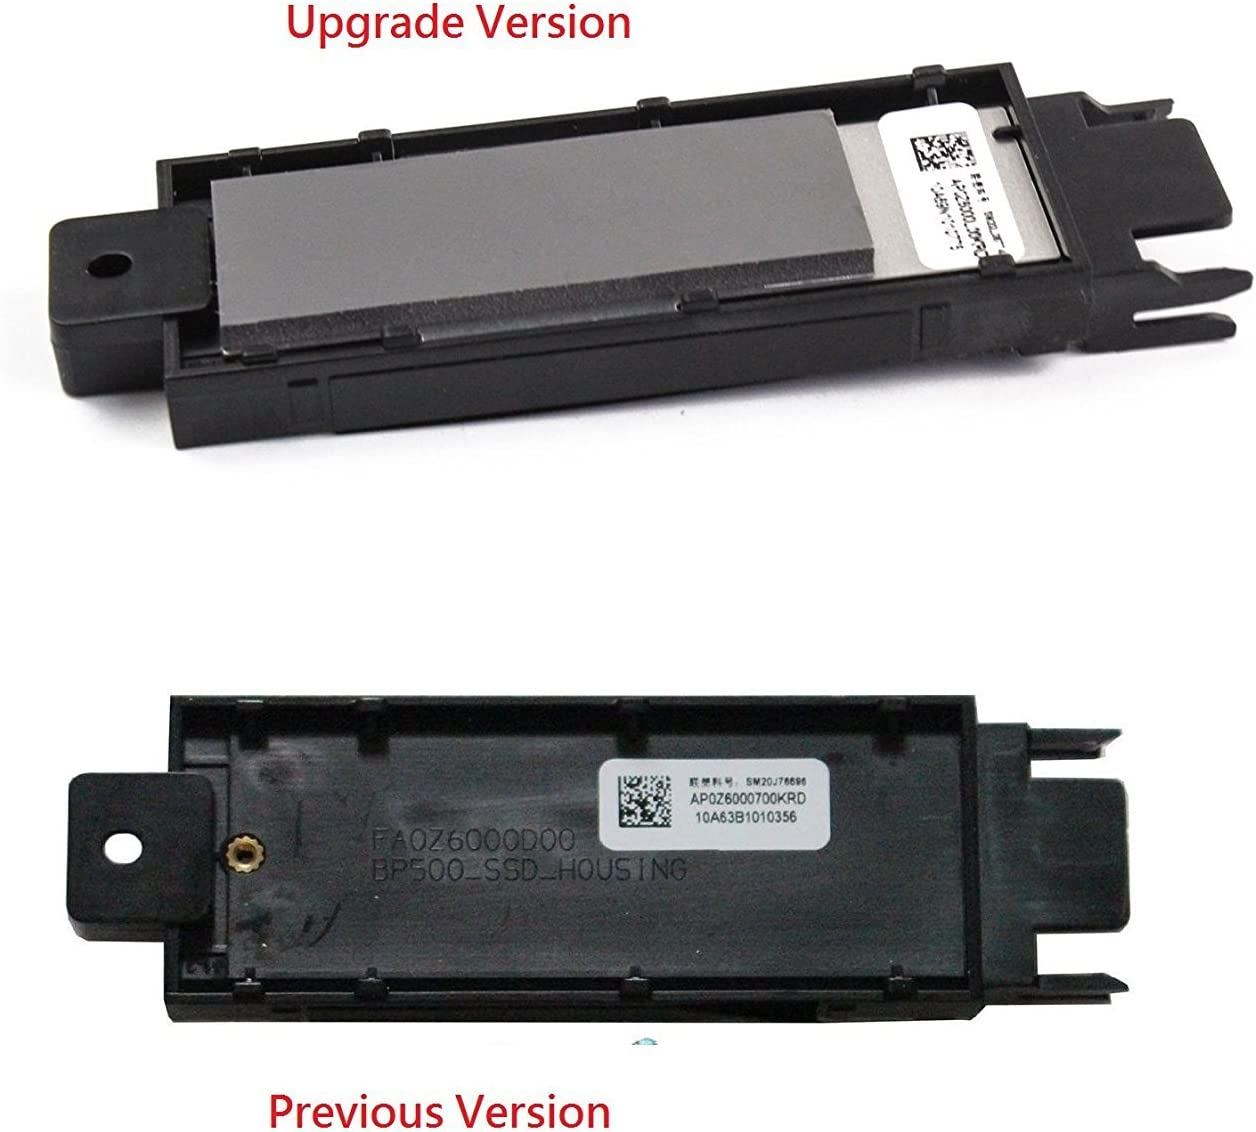 aGoodo Genuine Orginal HDD SSD NGFF M.2 22 x 80 Caddy Tray Internal Drive Bay Adapter for Lenovo ThinkPad P50 P51 P70 Series Laptop AP0Z6000700 (Upgrade Version)